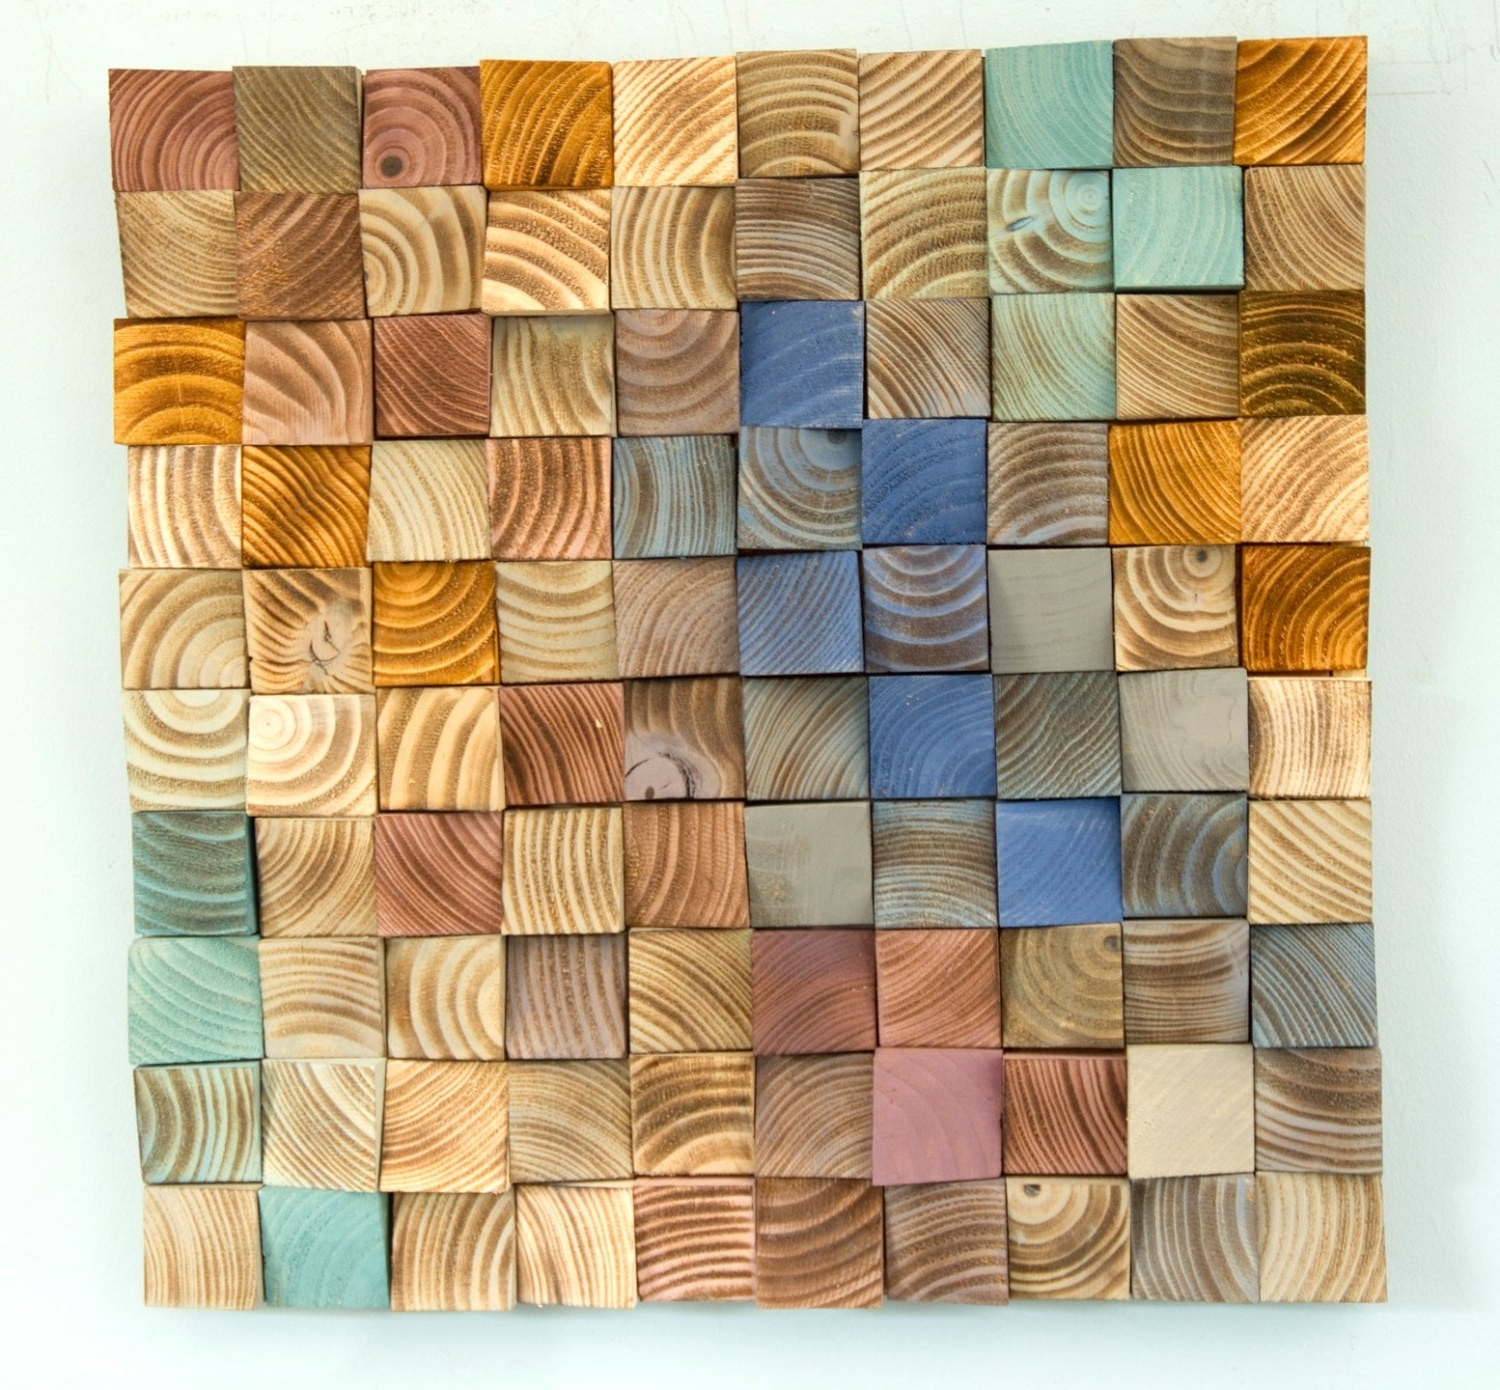 Best And Newest Wood Wall Art, Mosaic Wodd Art, Geometric Wall Art In Geometric Wall Art (View 3 of 20)